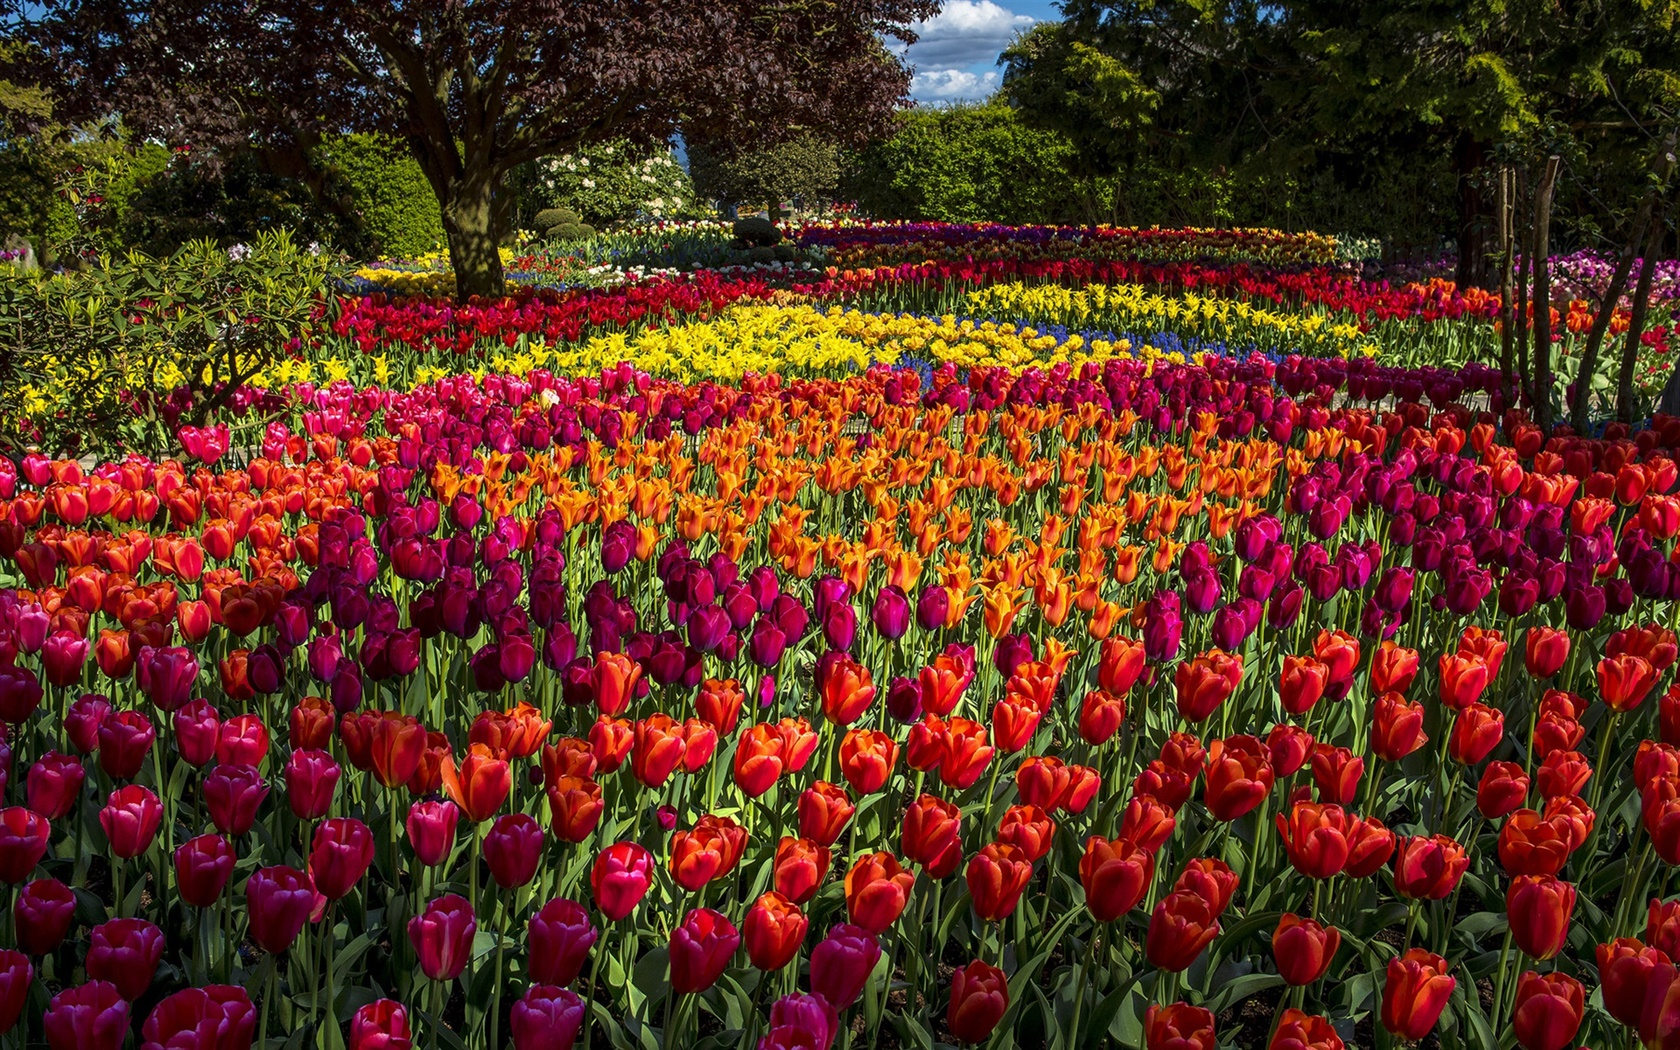 Tulips, colorful, trees, park 1680x1050 wallpaper